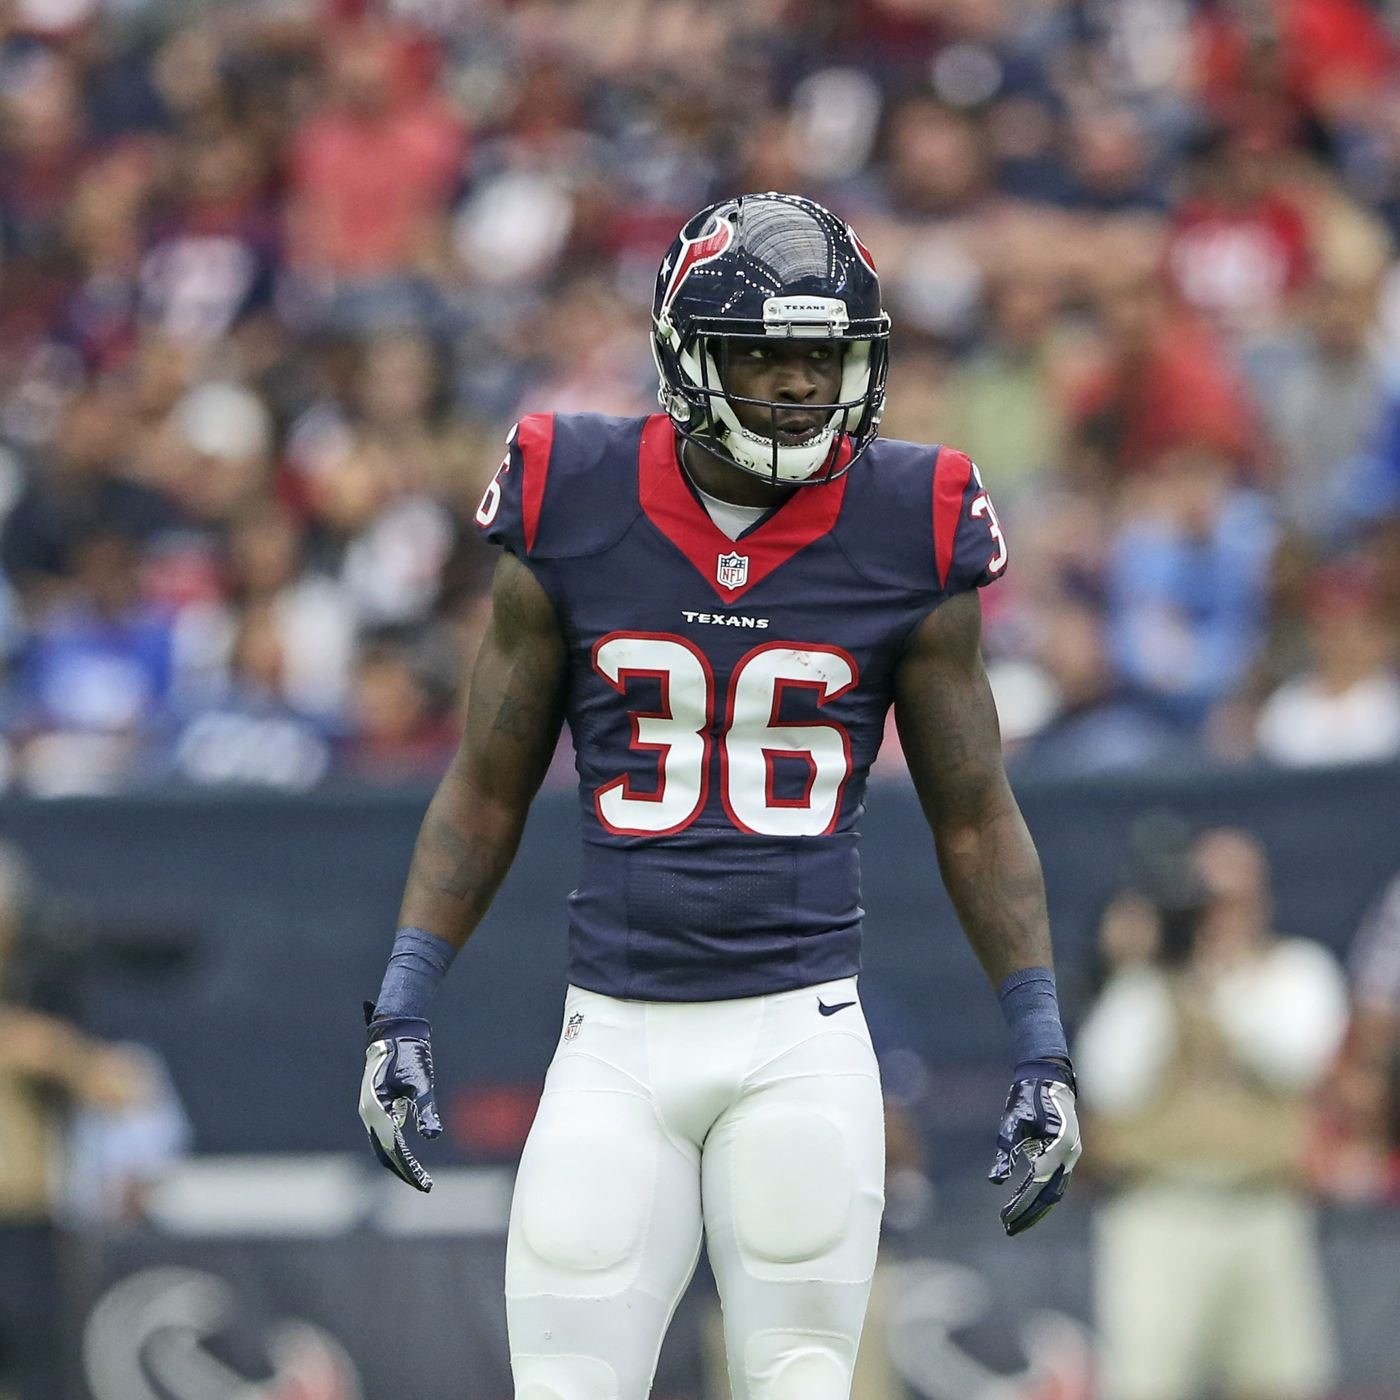 Houston Texans Injury News: K.J. Dillon Tears ACL In Victory Over ...